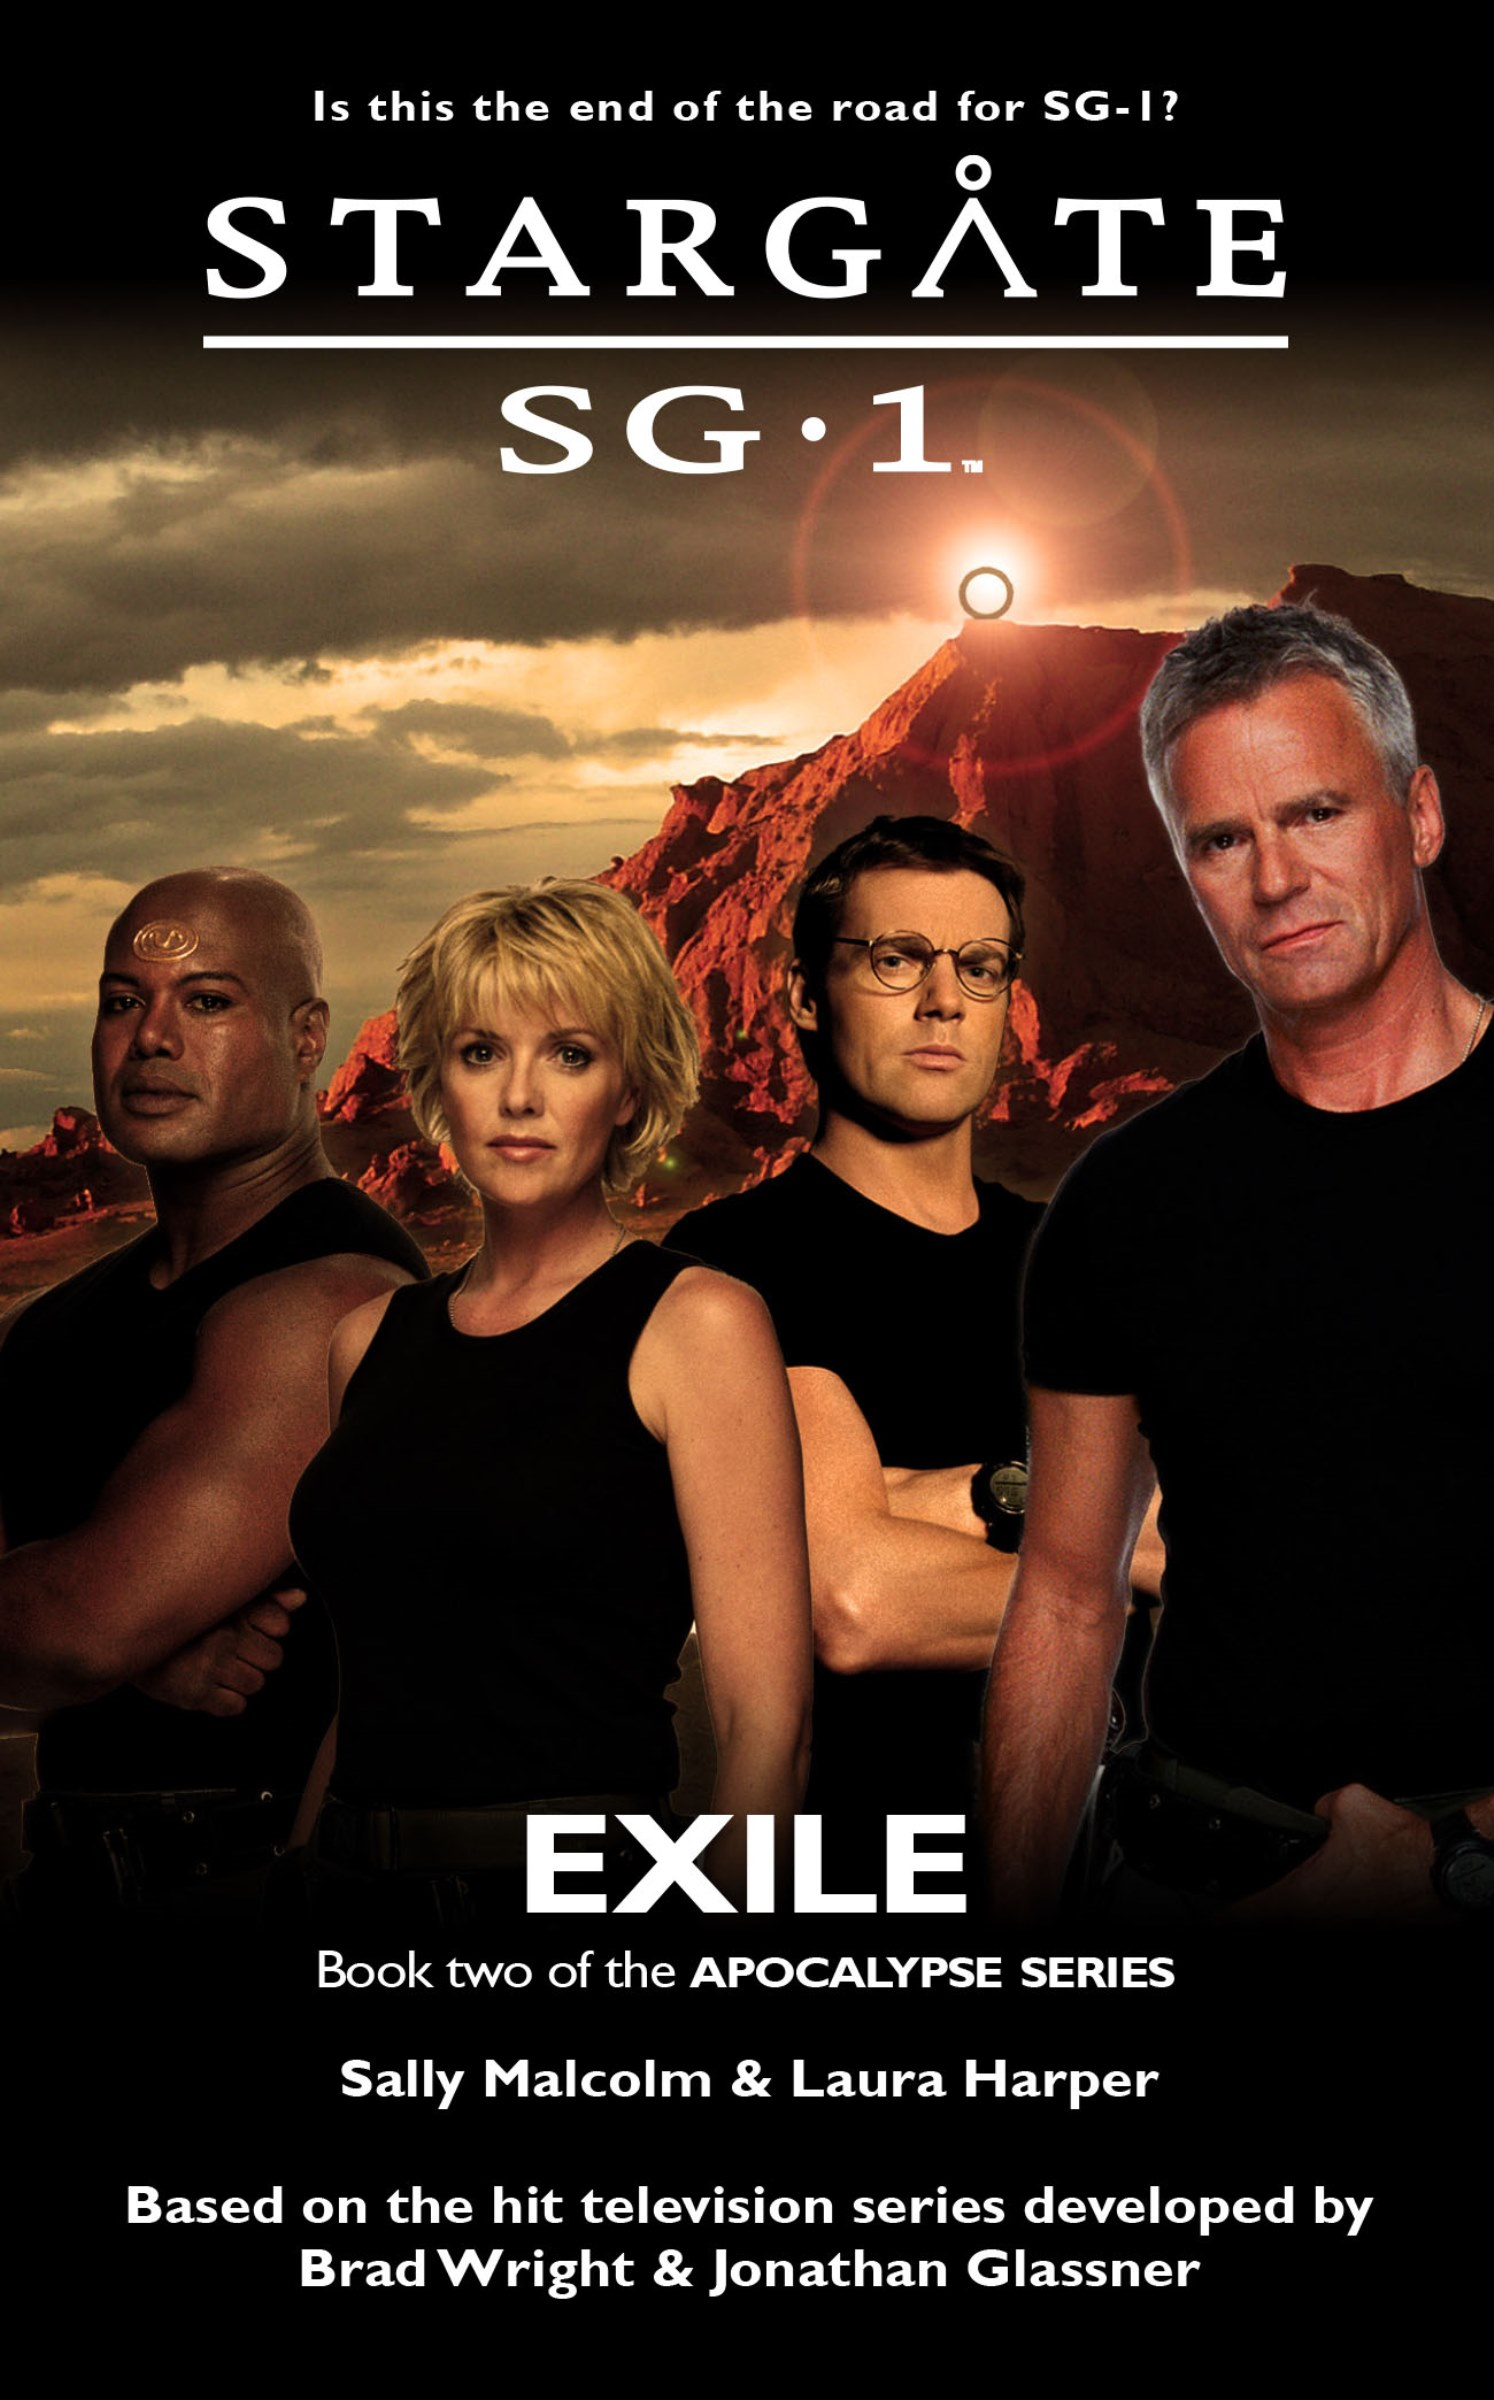 Stargate SG1 - Exile - Book two of the APOCALYPSE SERIES, an Ebook by Sally  Malcolm & Laura Harper